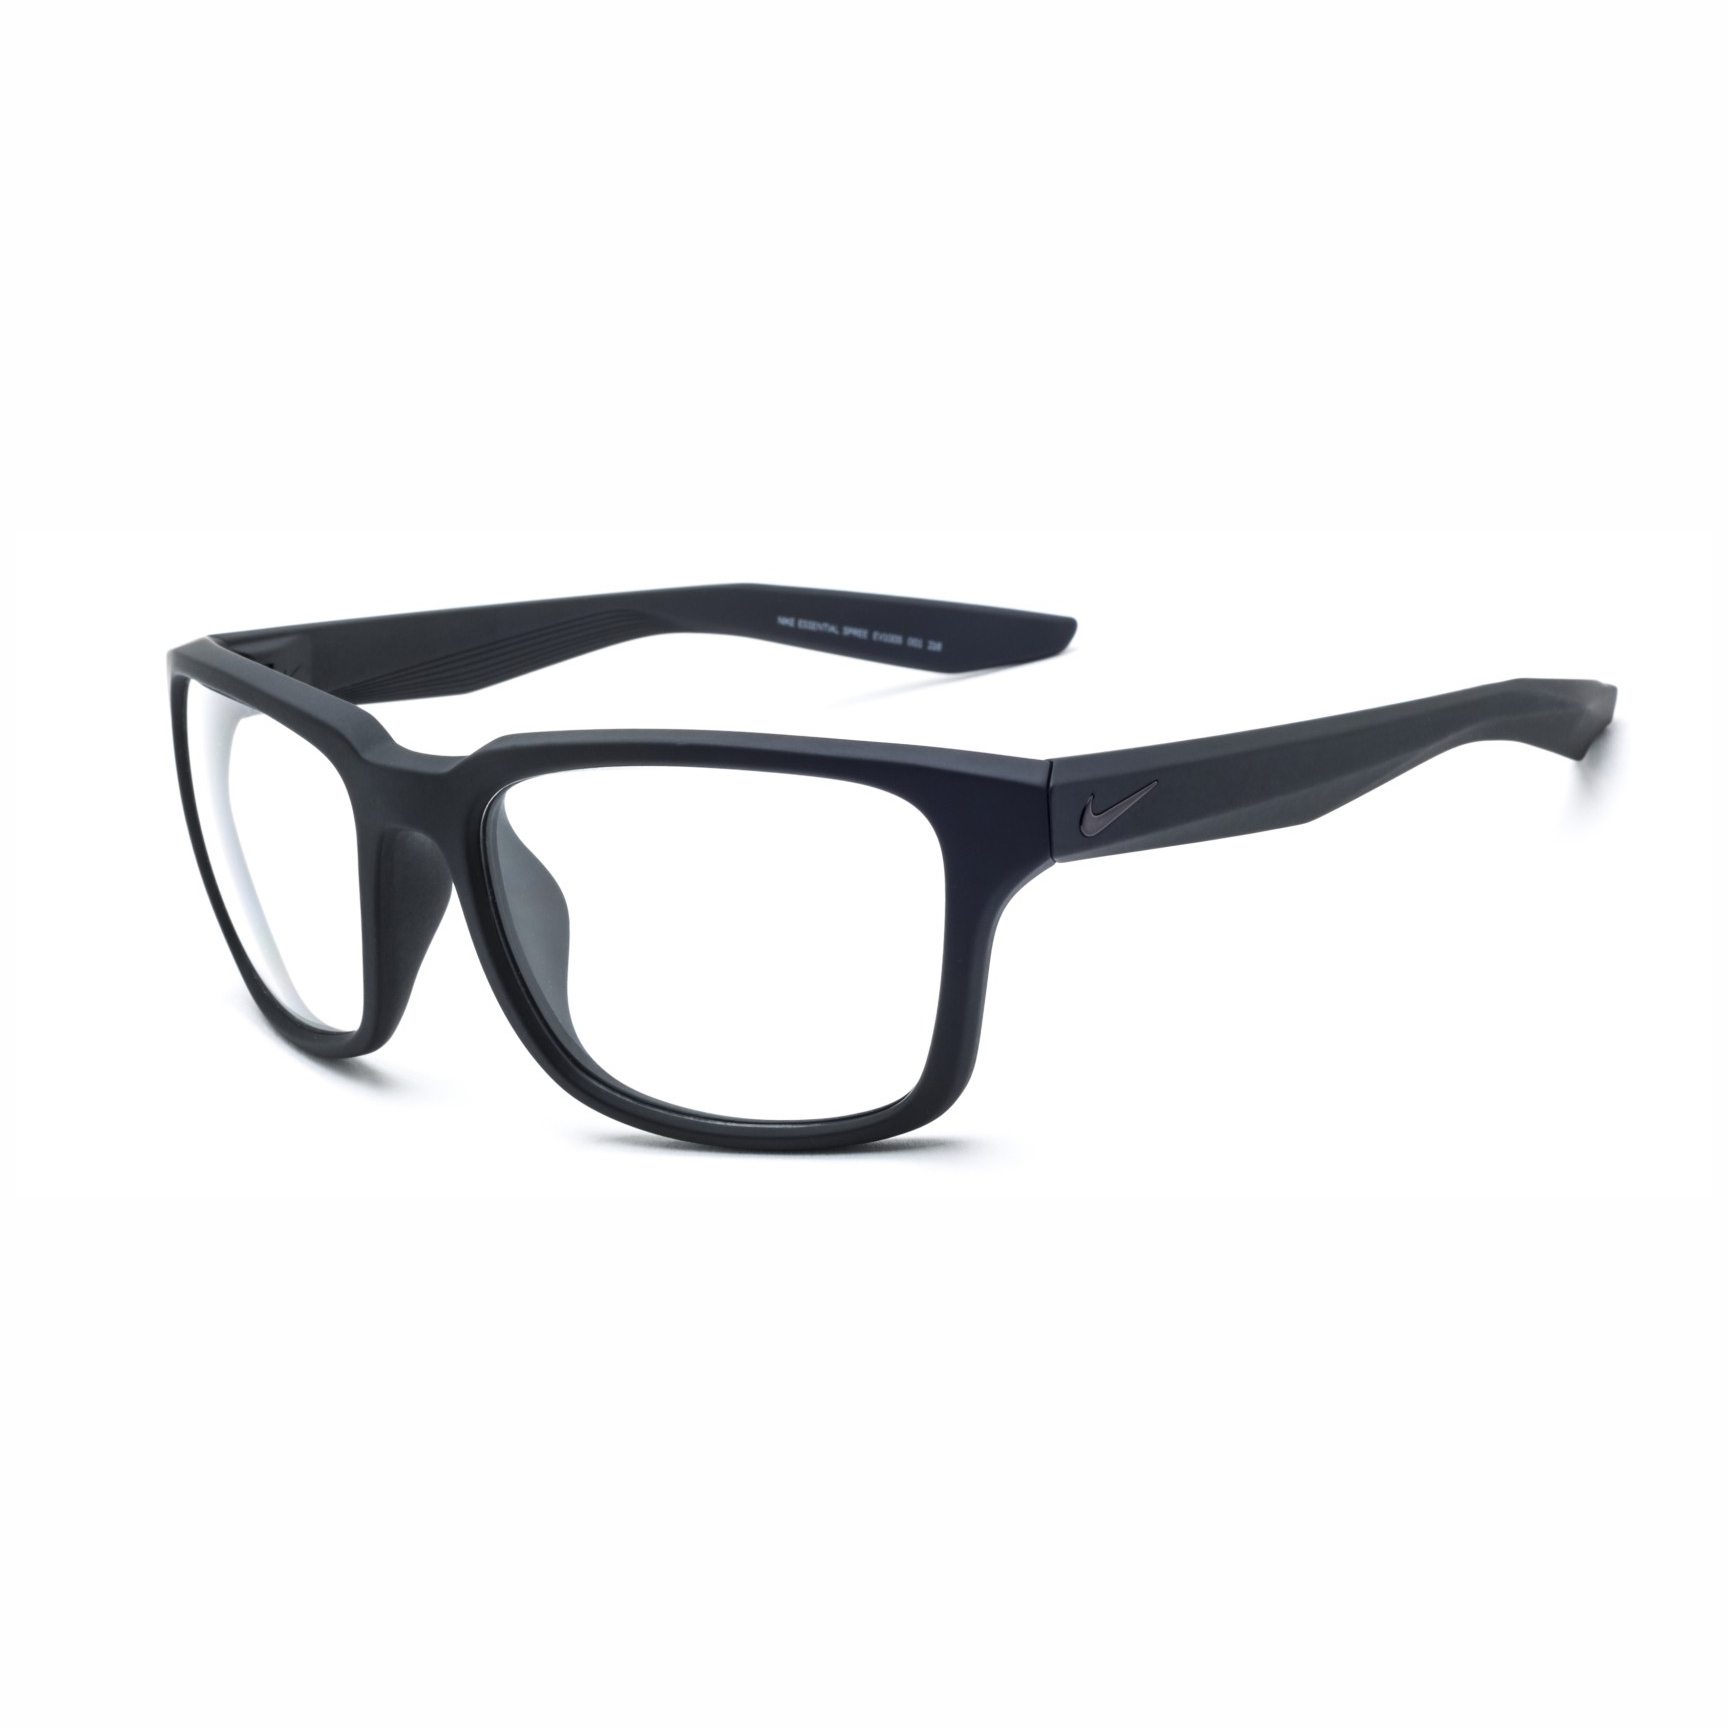 6592906b726 Nike Spree Lead Glasses - CMX Medical Imaging